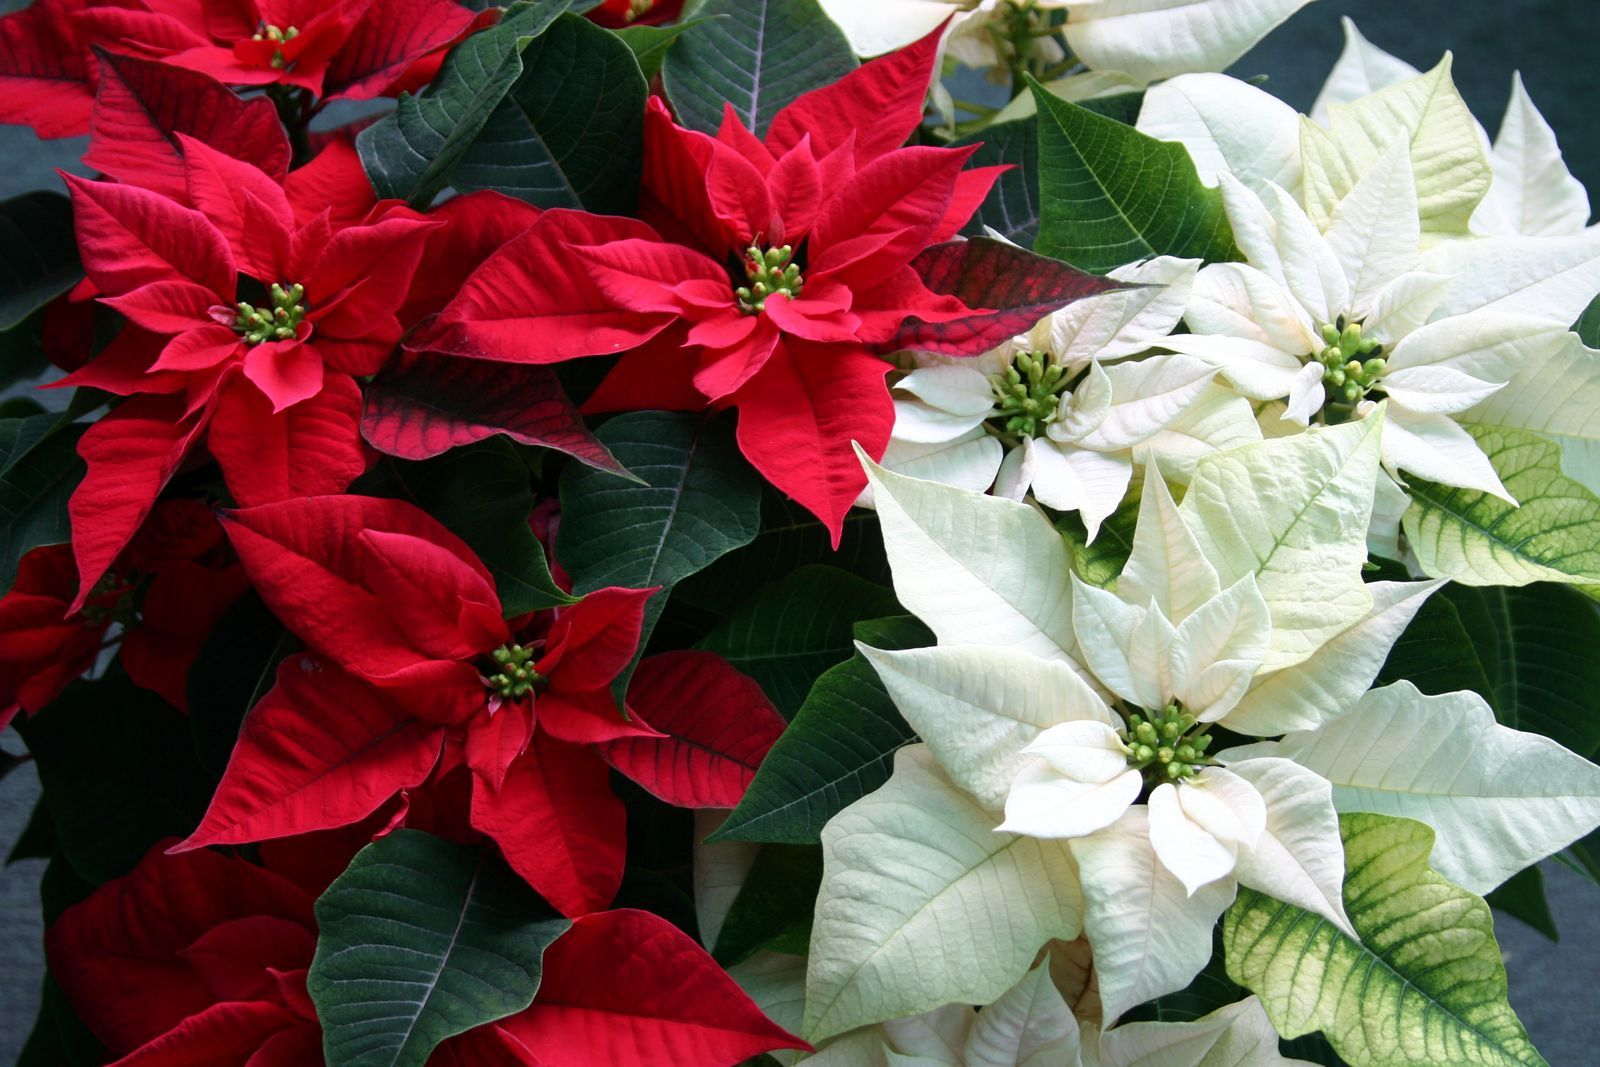 The Garden Flowers That Can Kill Your Pet Owners Warned To Keep Four Legged Friends Away From Lilies And Poinsettias Flea Shampoo For Cats Toxic Plants For Cats Cats And Cucumbers